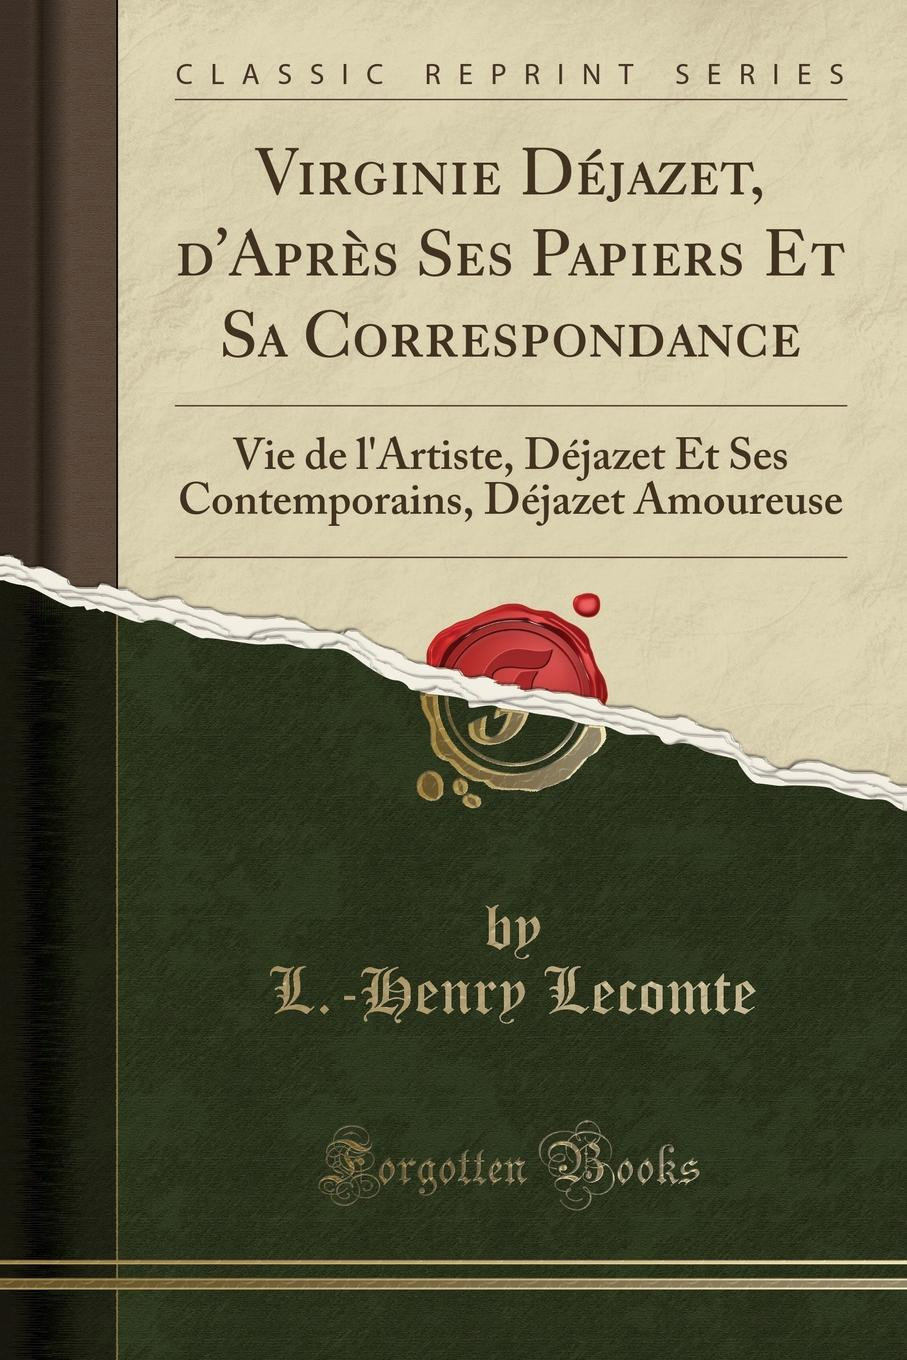 L.-Henry Lecomte Virginie Dejazet, d.Apres Ses Papiers Et Sa Correspondance. Vie de l.Artiste, Dejazet Et Ses Contemporains, Dejazet Amoureuse (Classic Reprint) 270mm oversize front floating brake disc rotor cr125 cr250 crf enduro hm 230cc crf x r 250 450 motocross dirt bike supermoto